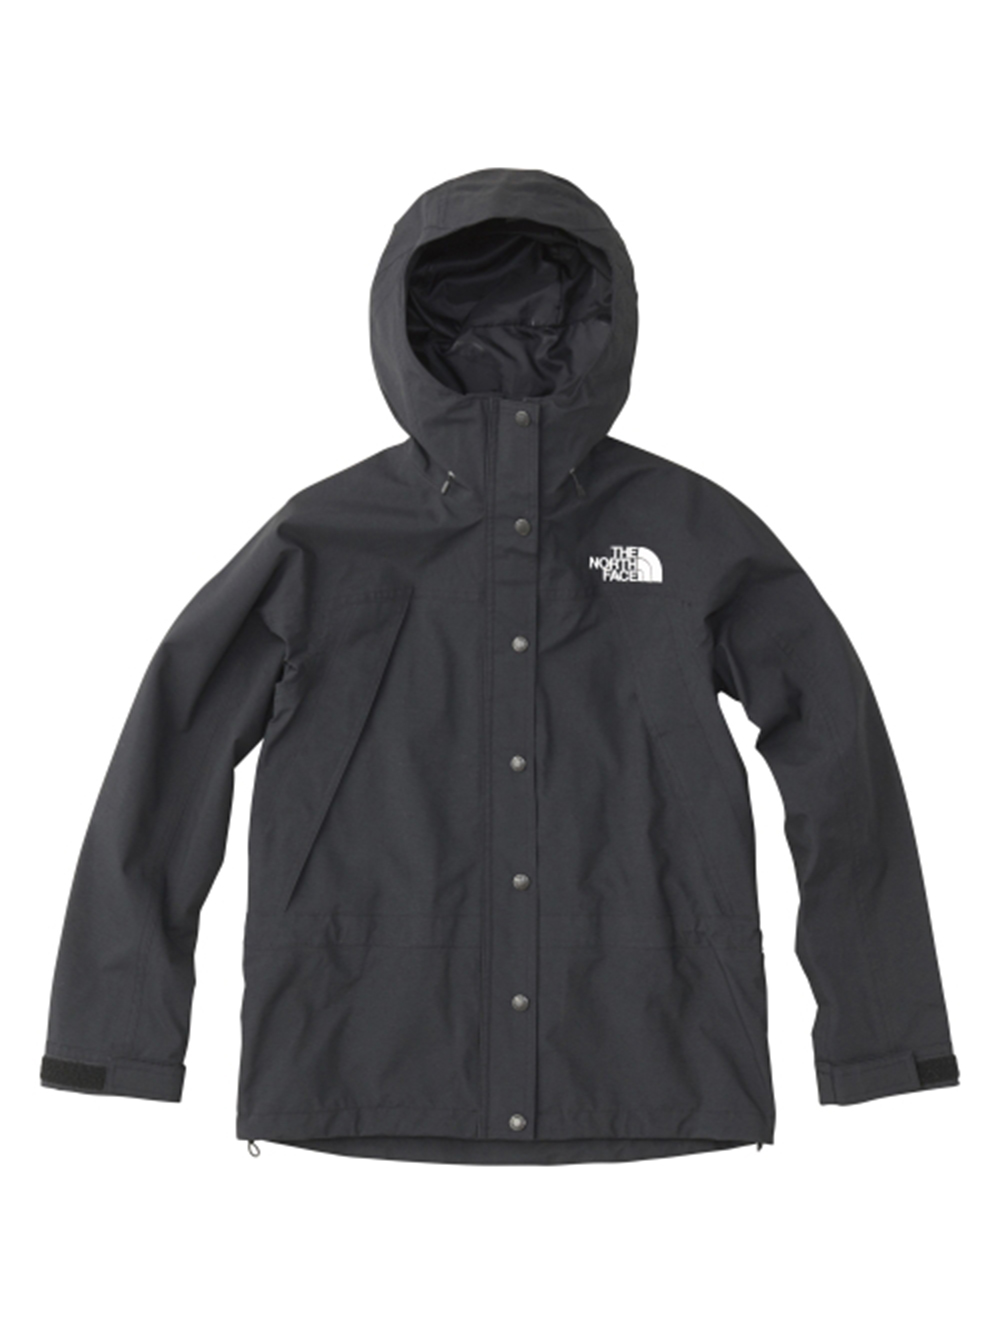 【THE NORTH FACE】Mountain Light Jacket